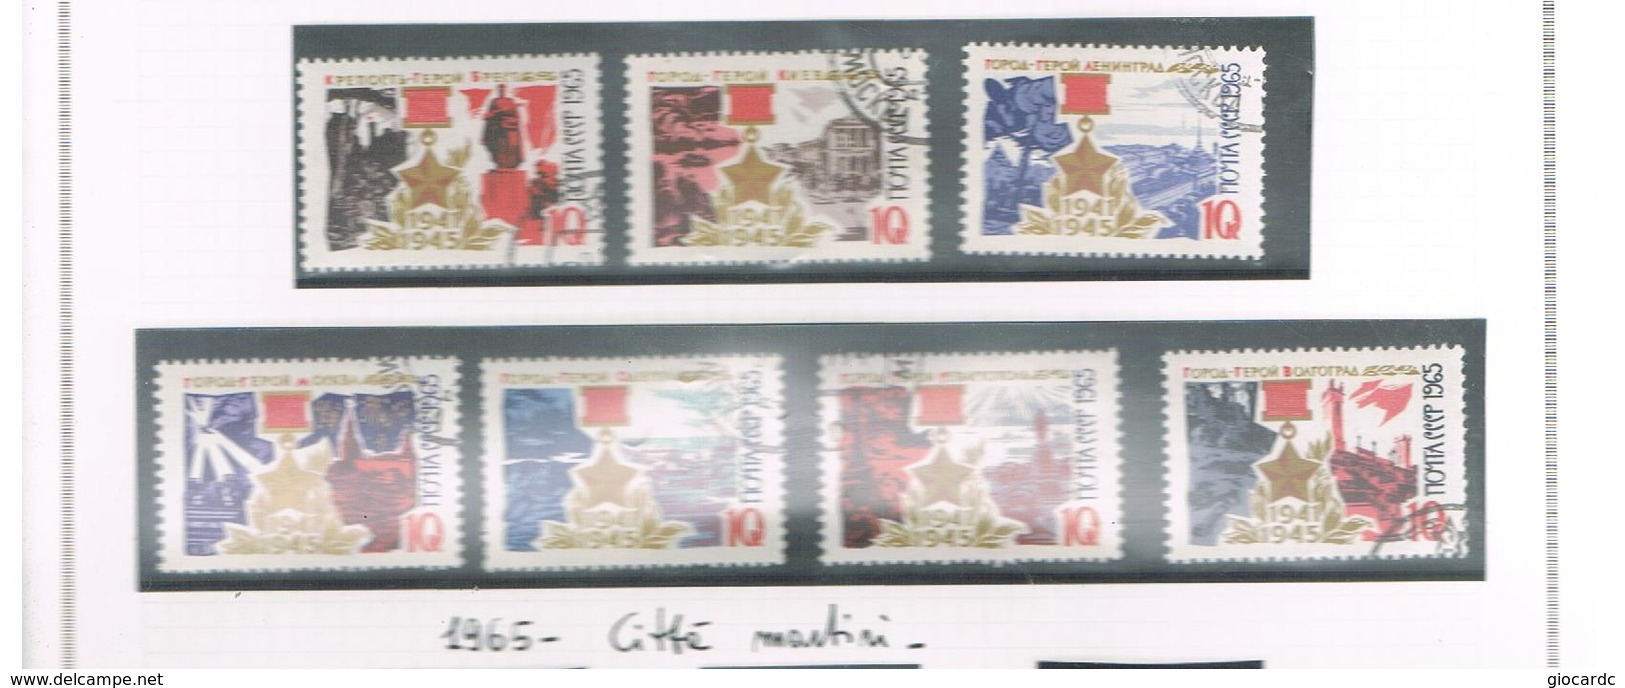 URSS -  SG  3225.3231  - 1965  HEROIC SOVIET  TOWNS  (COMPLET SET OF 7)      - USED°  - RIF. CP - 1923-1991 USSR